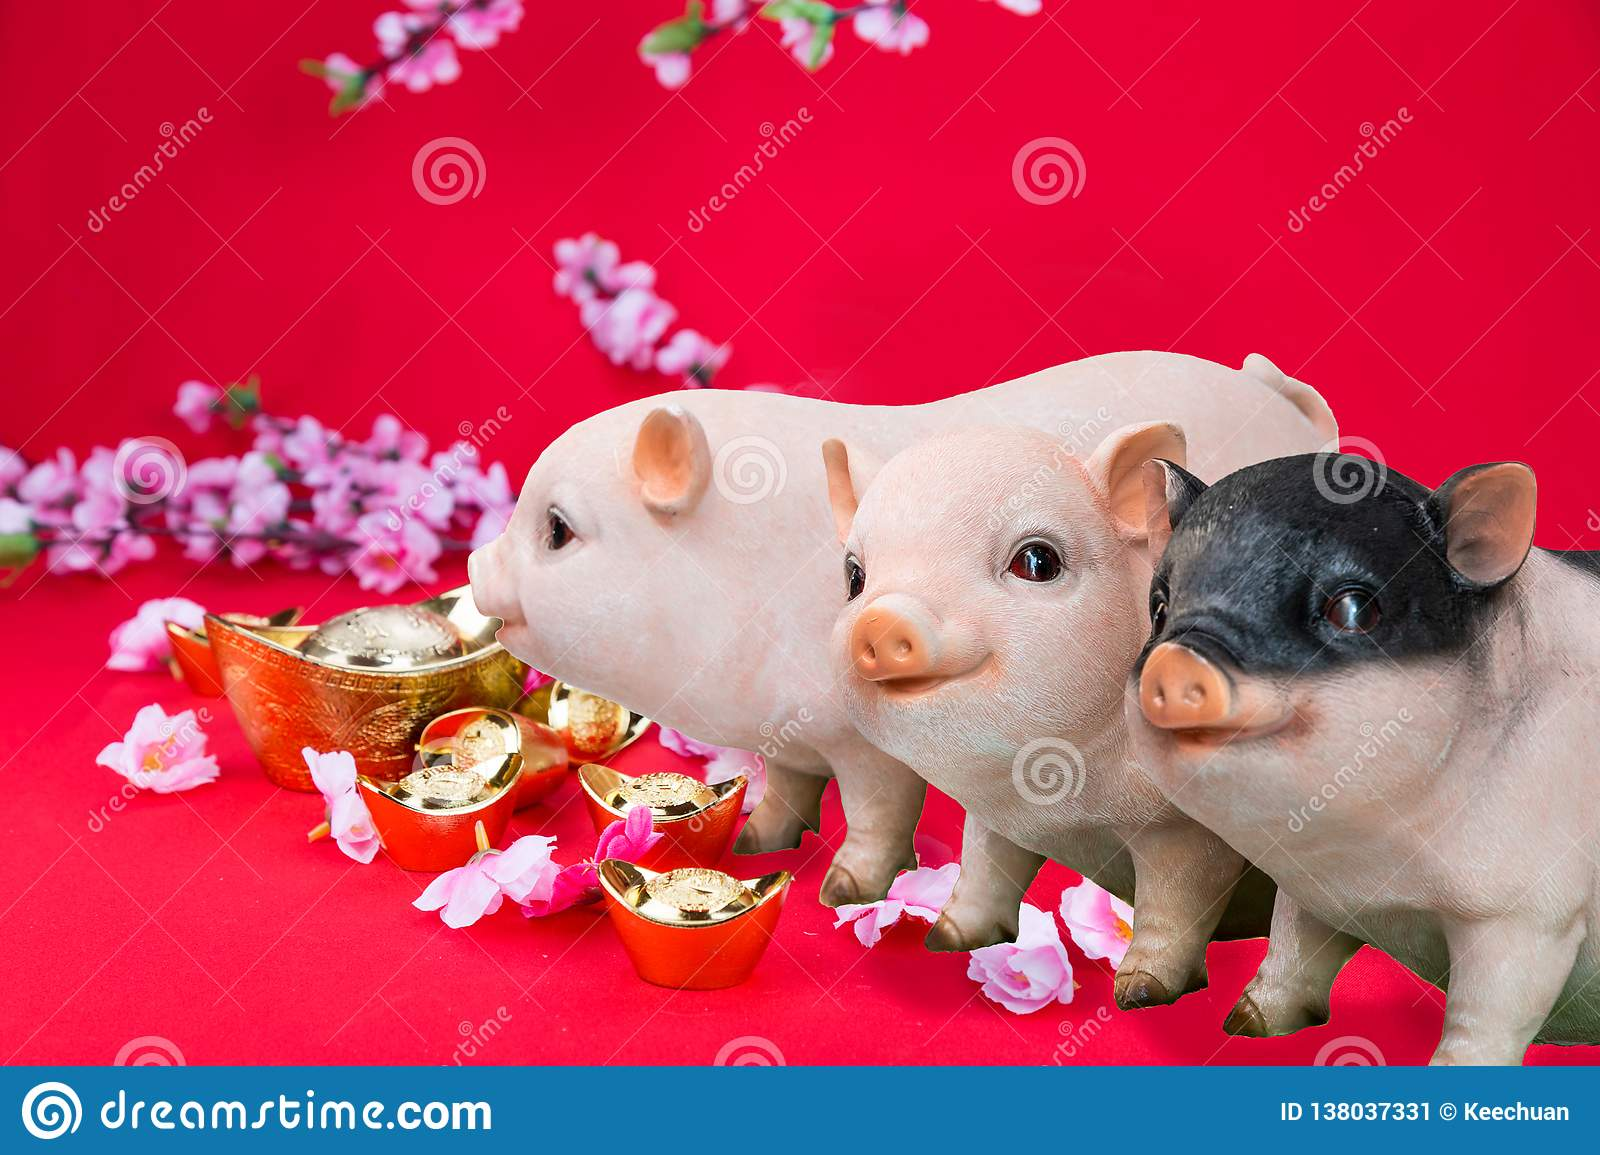 Pig boar with cherry blossom flower, 2019 Chinese New Year